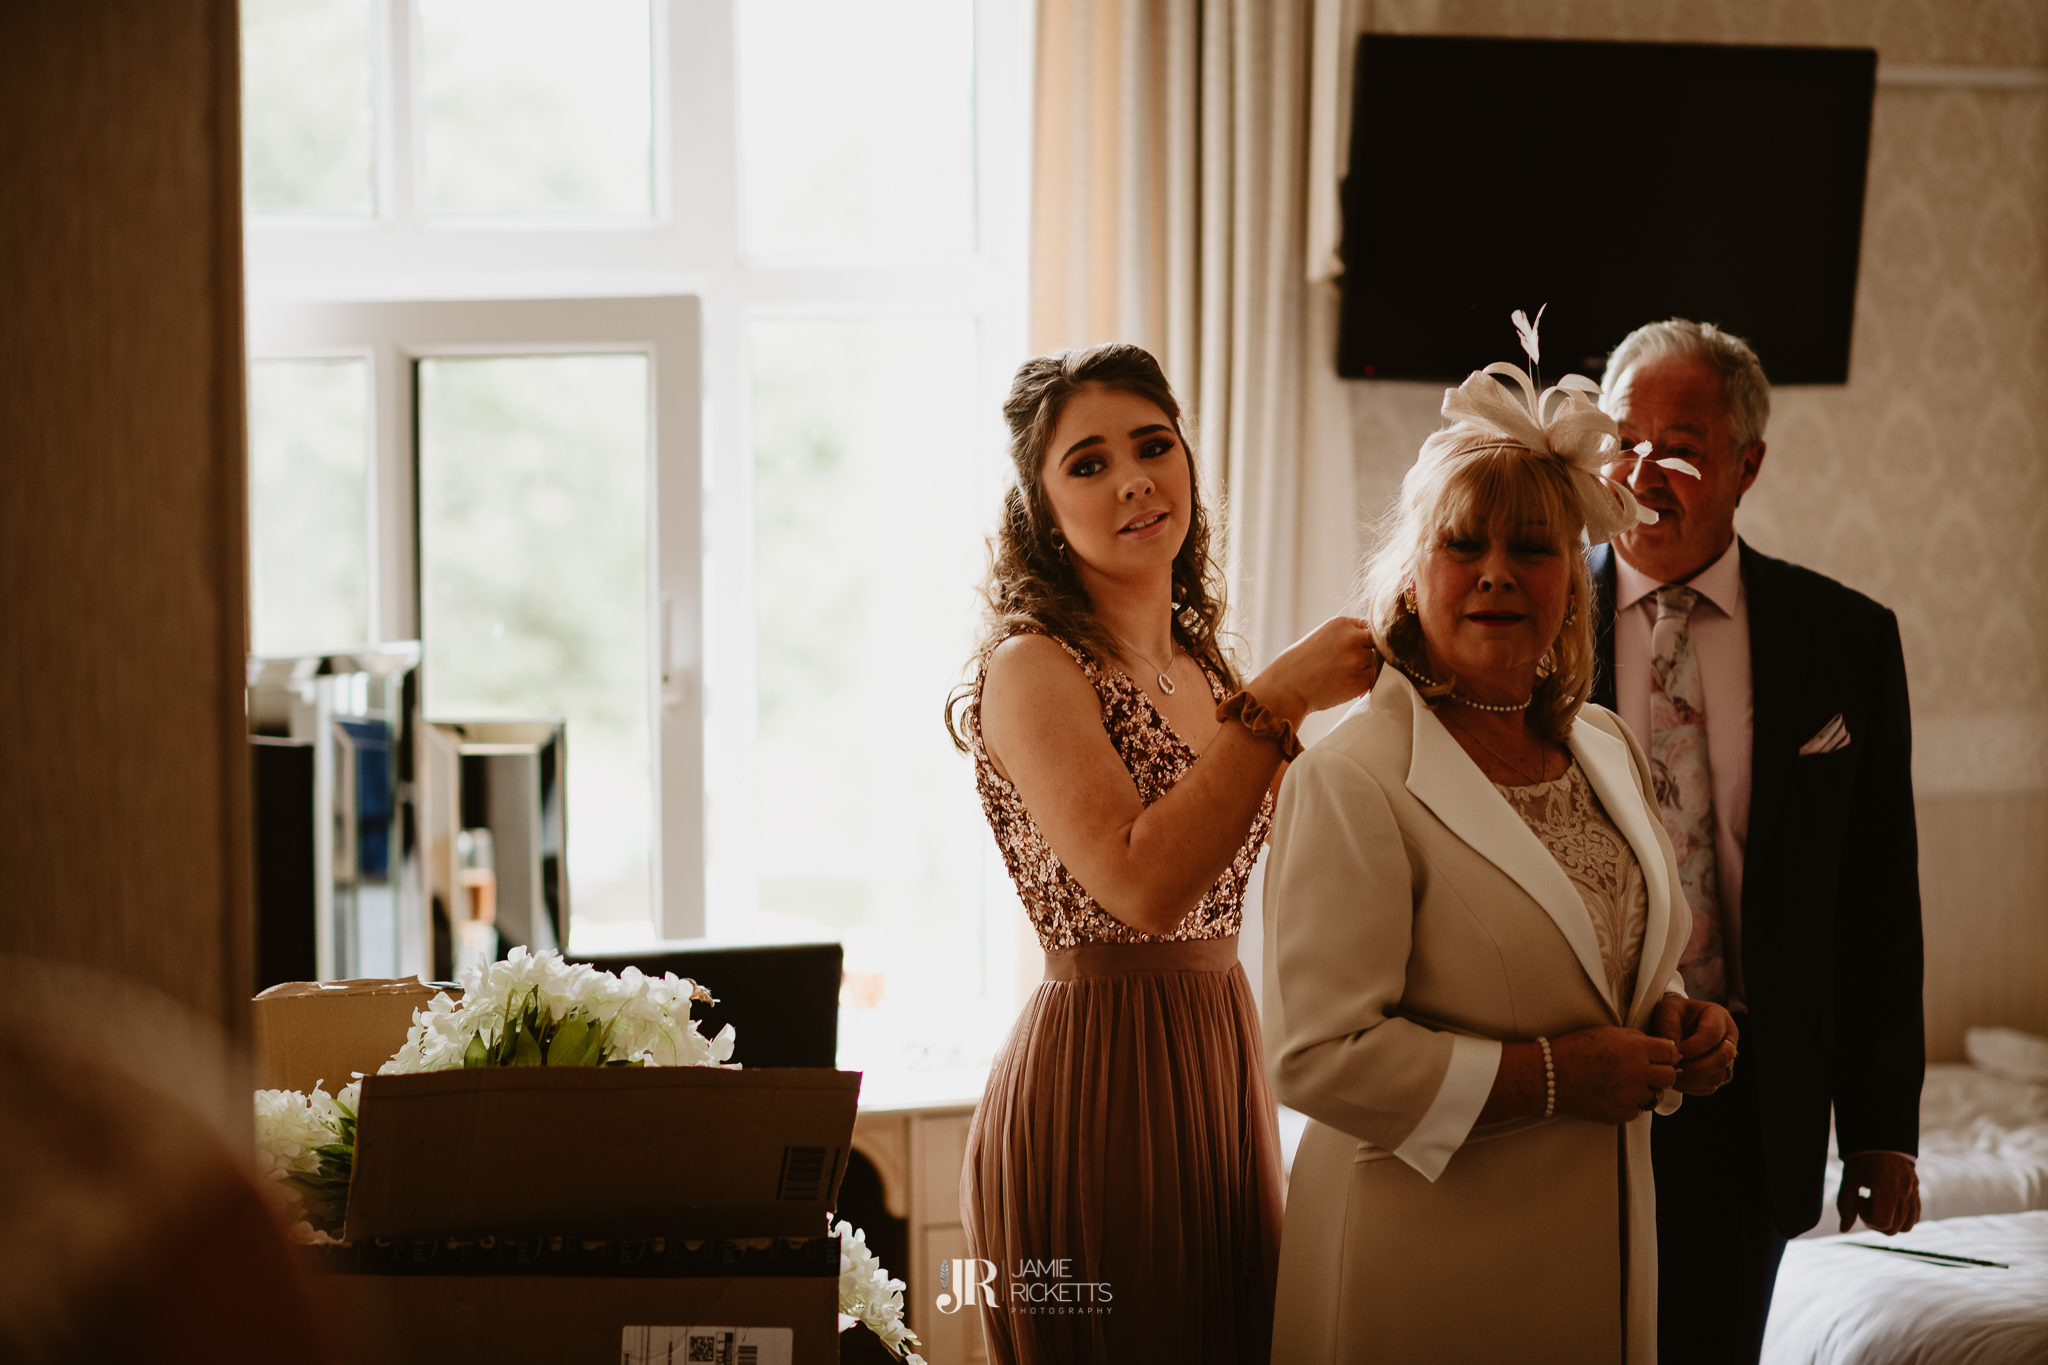 Wroxeter-Hotel-Wedding-Photography-In-Shropshire-By-Shropshire-Wedding-Photographer-Jamie-Ricketts-042.JPG